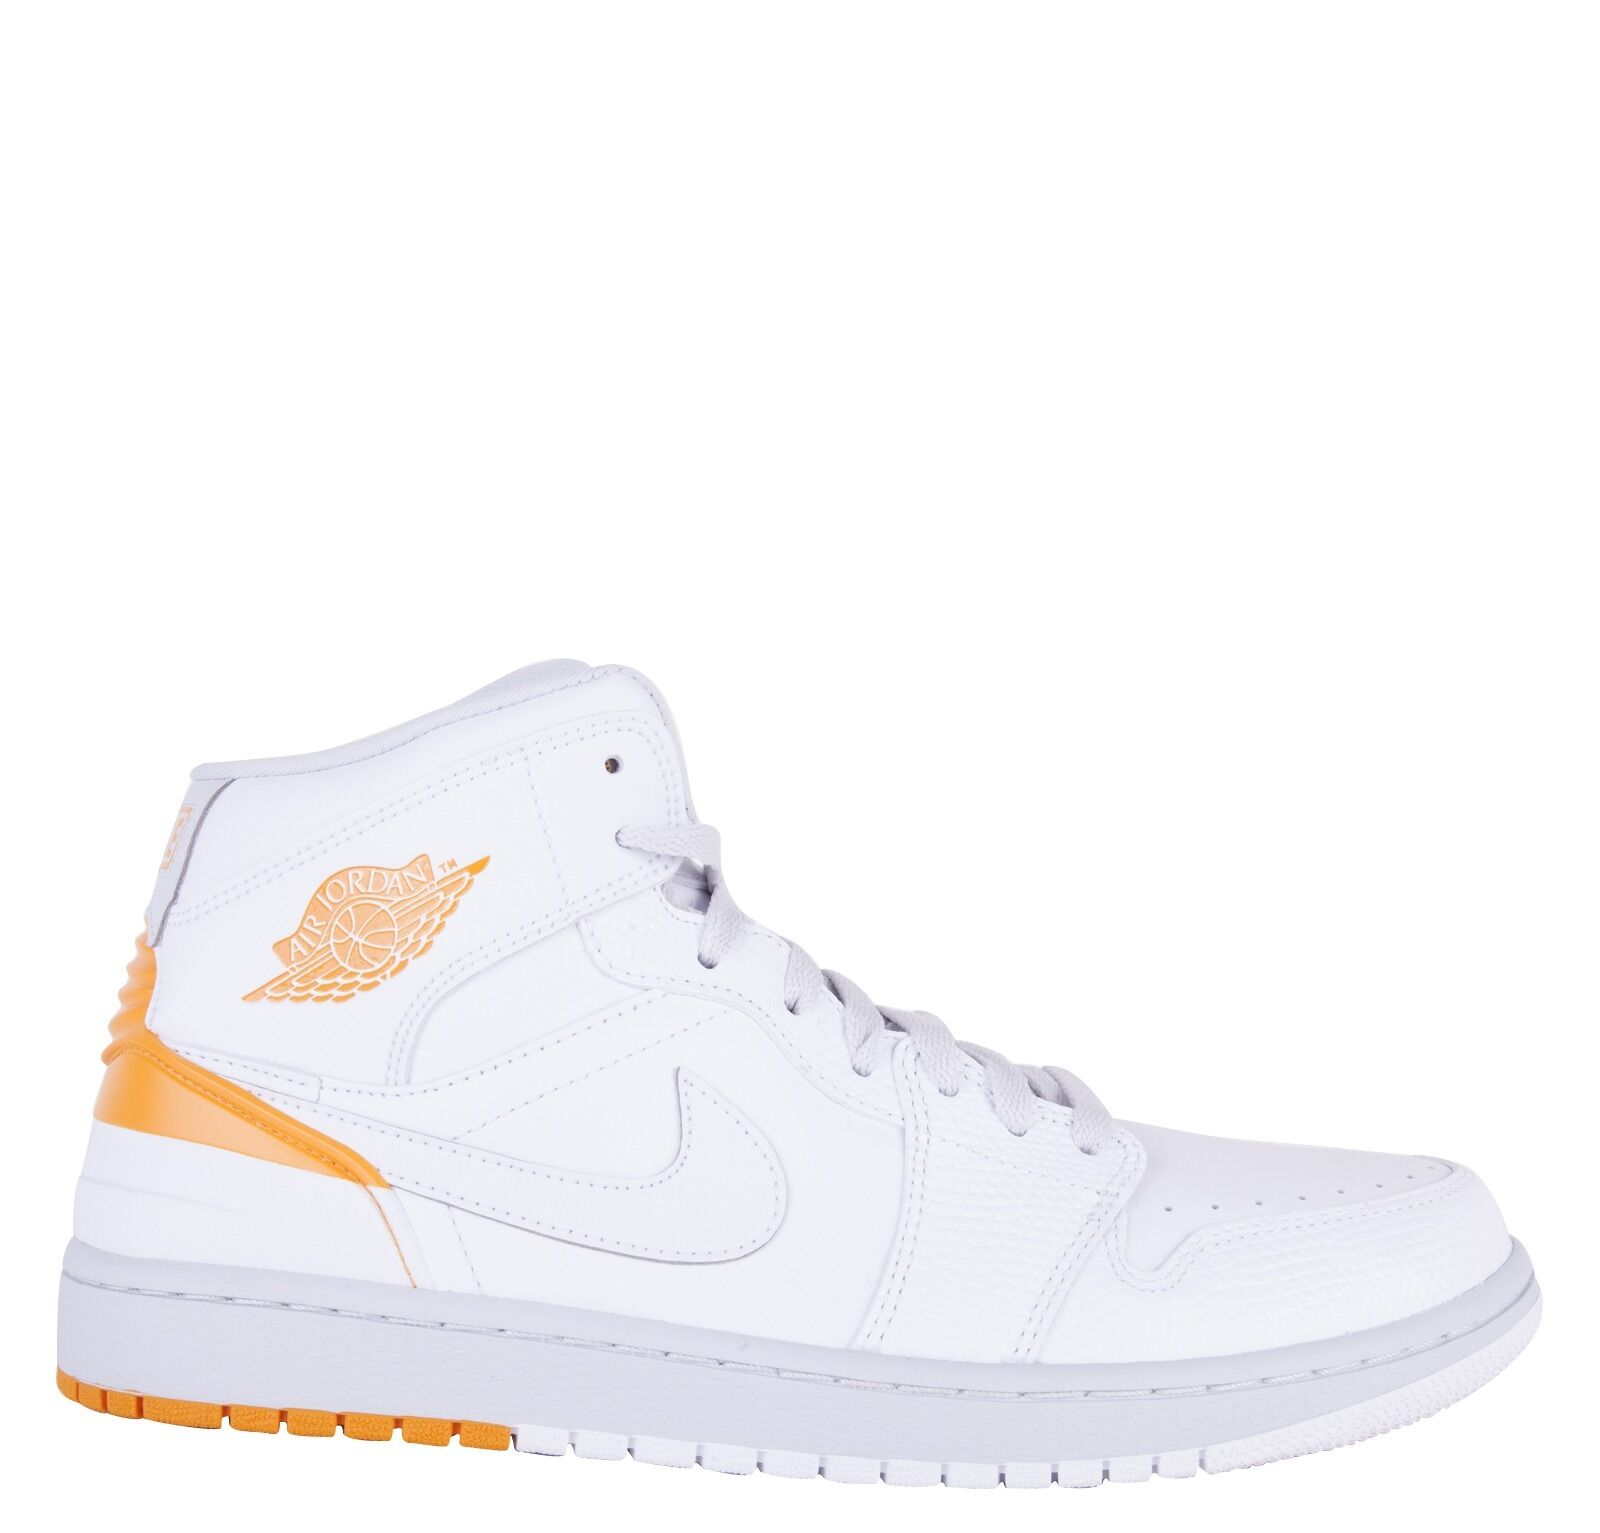 Air jordan retro - and 1 '86 / orange and - WEISS / einpacken a4a85d